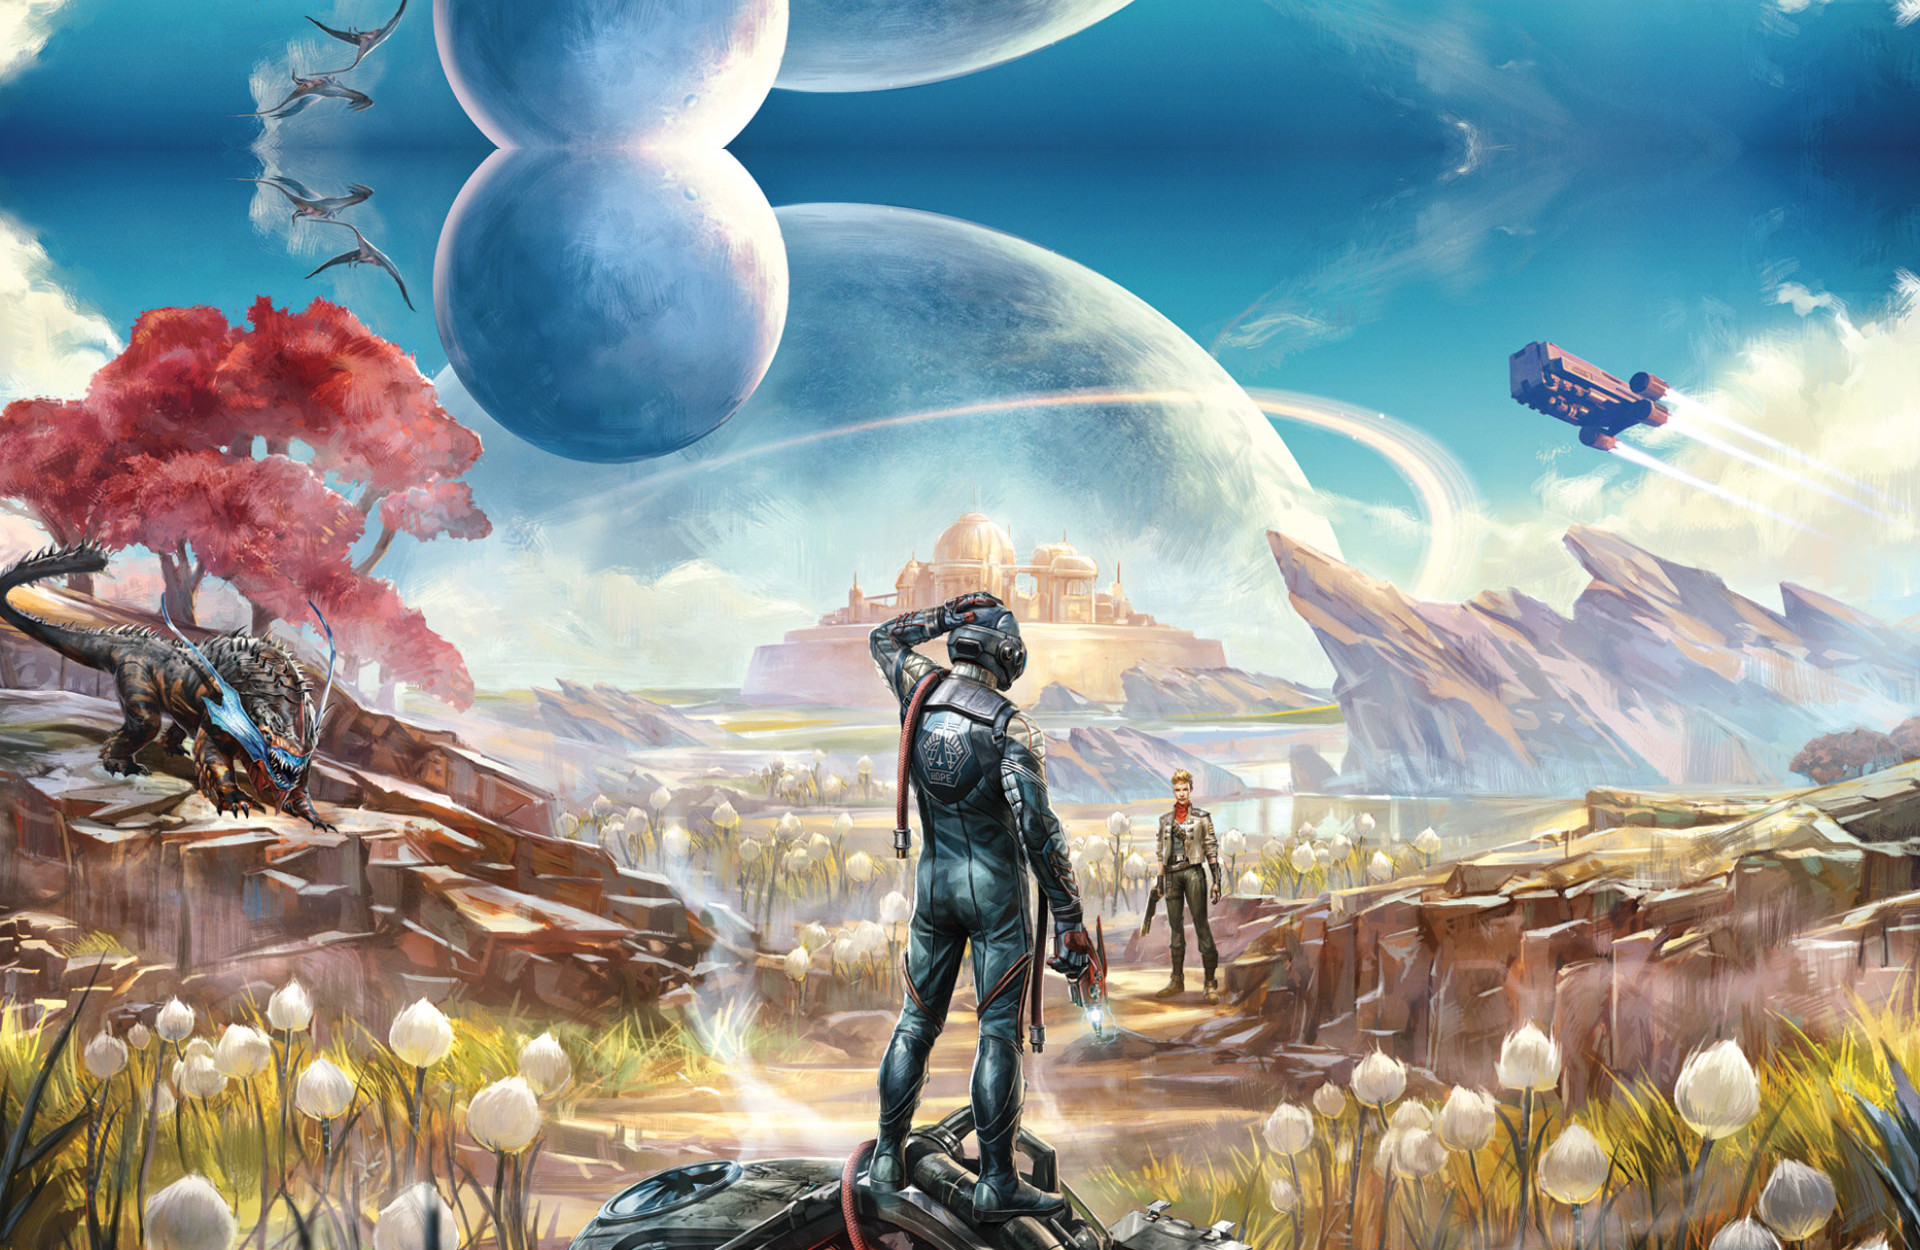 The Outer Worlds. A disoriented traveller looks at a woman in the distance on an alien world.